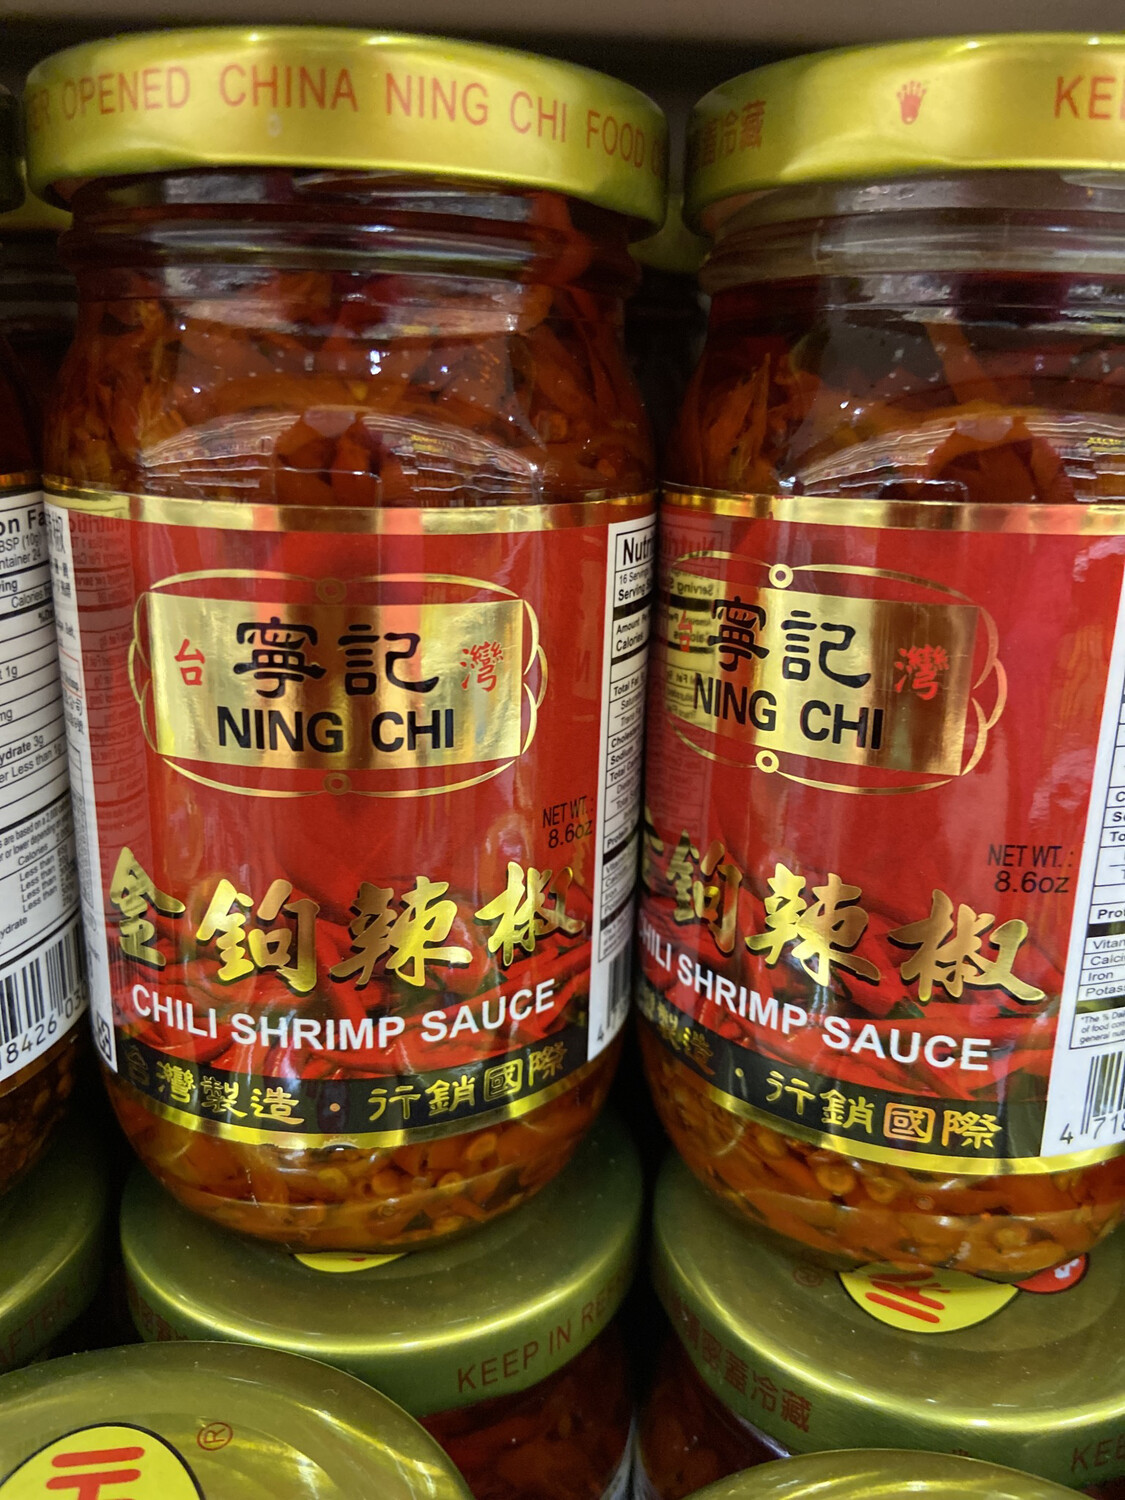 【RG】宁记 金钩辣椒 Chili Shrimp Sauce  8.6oz